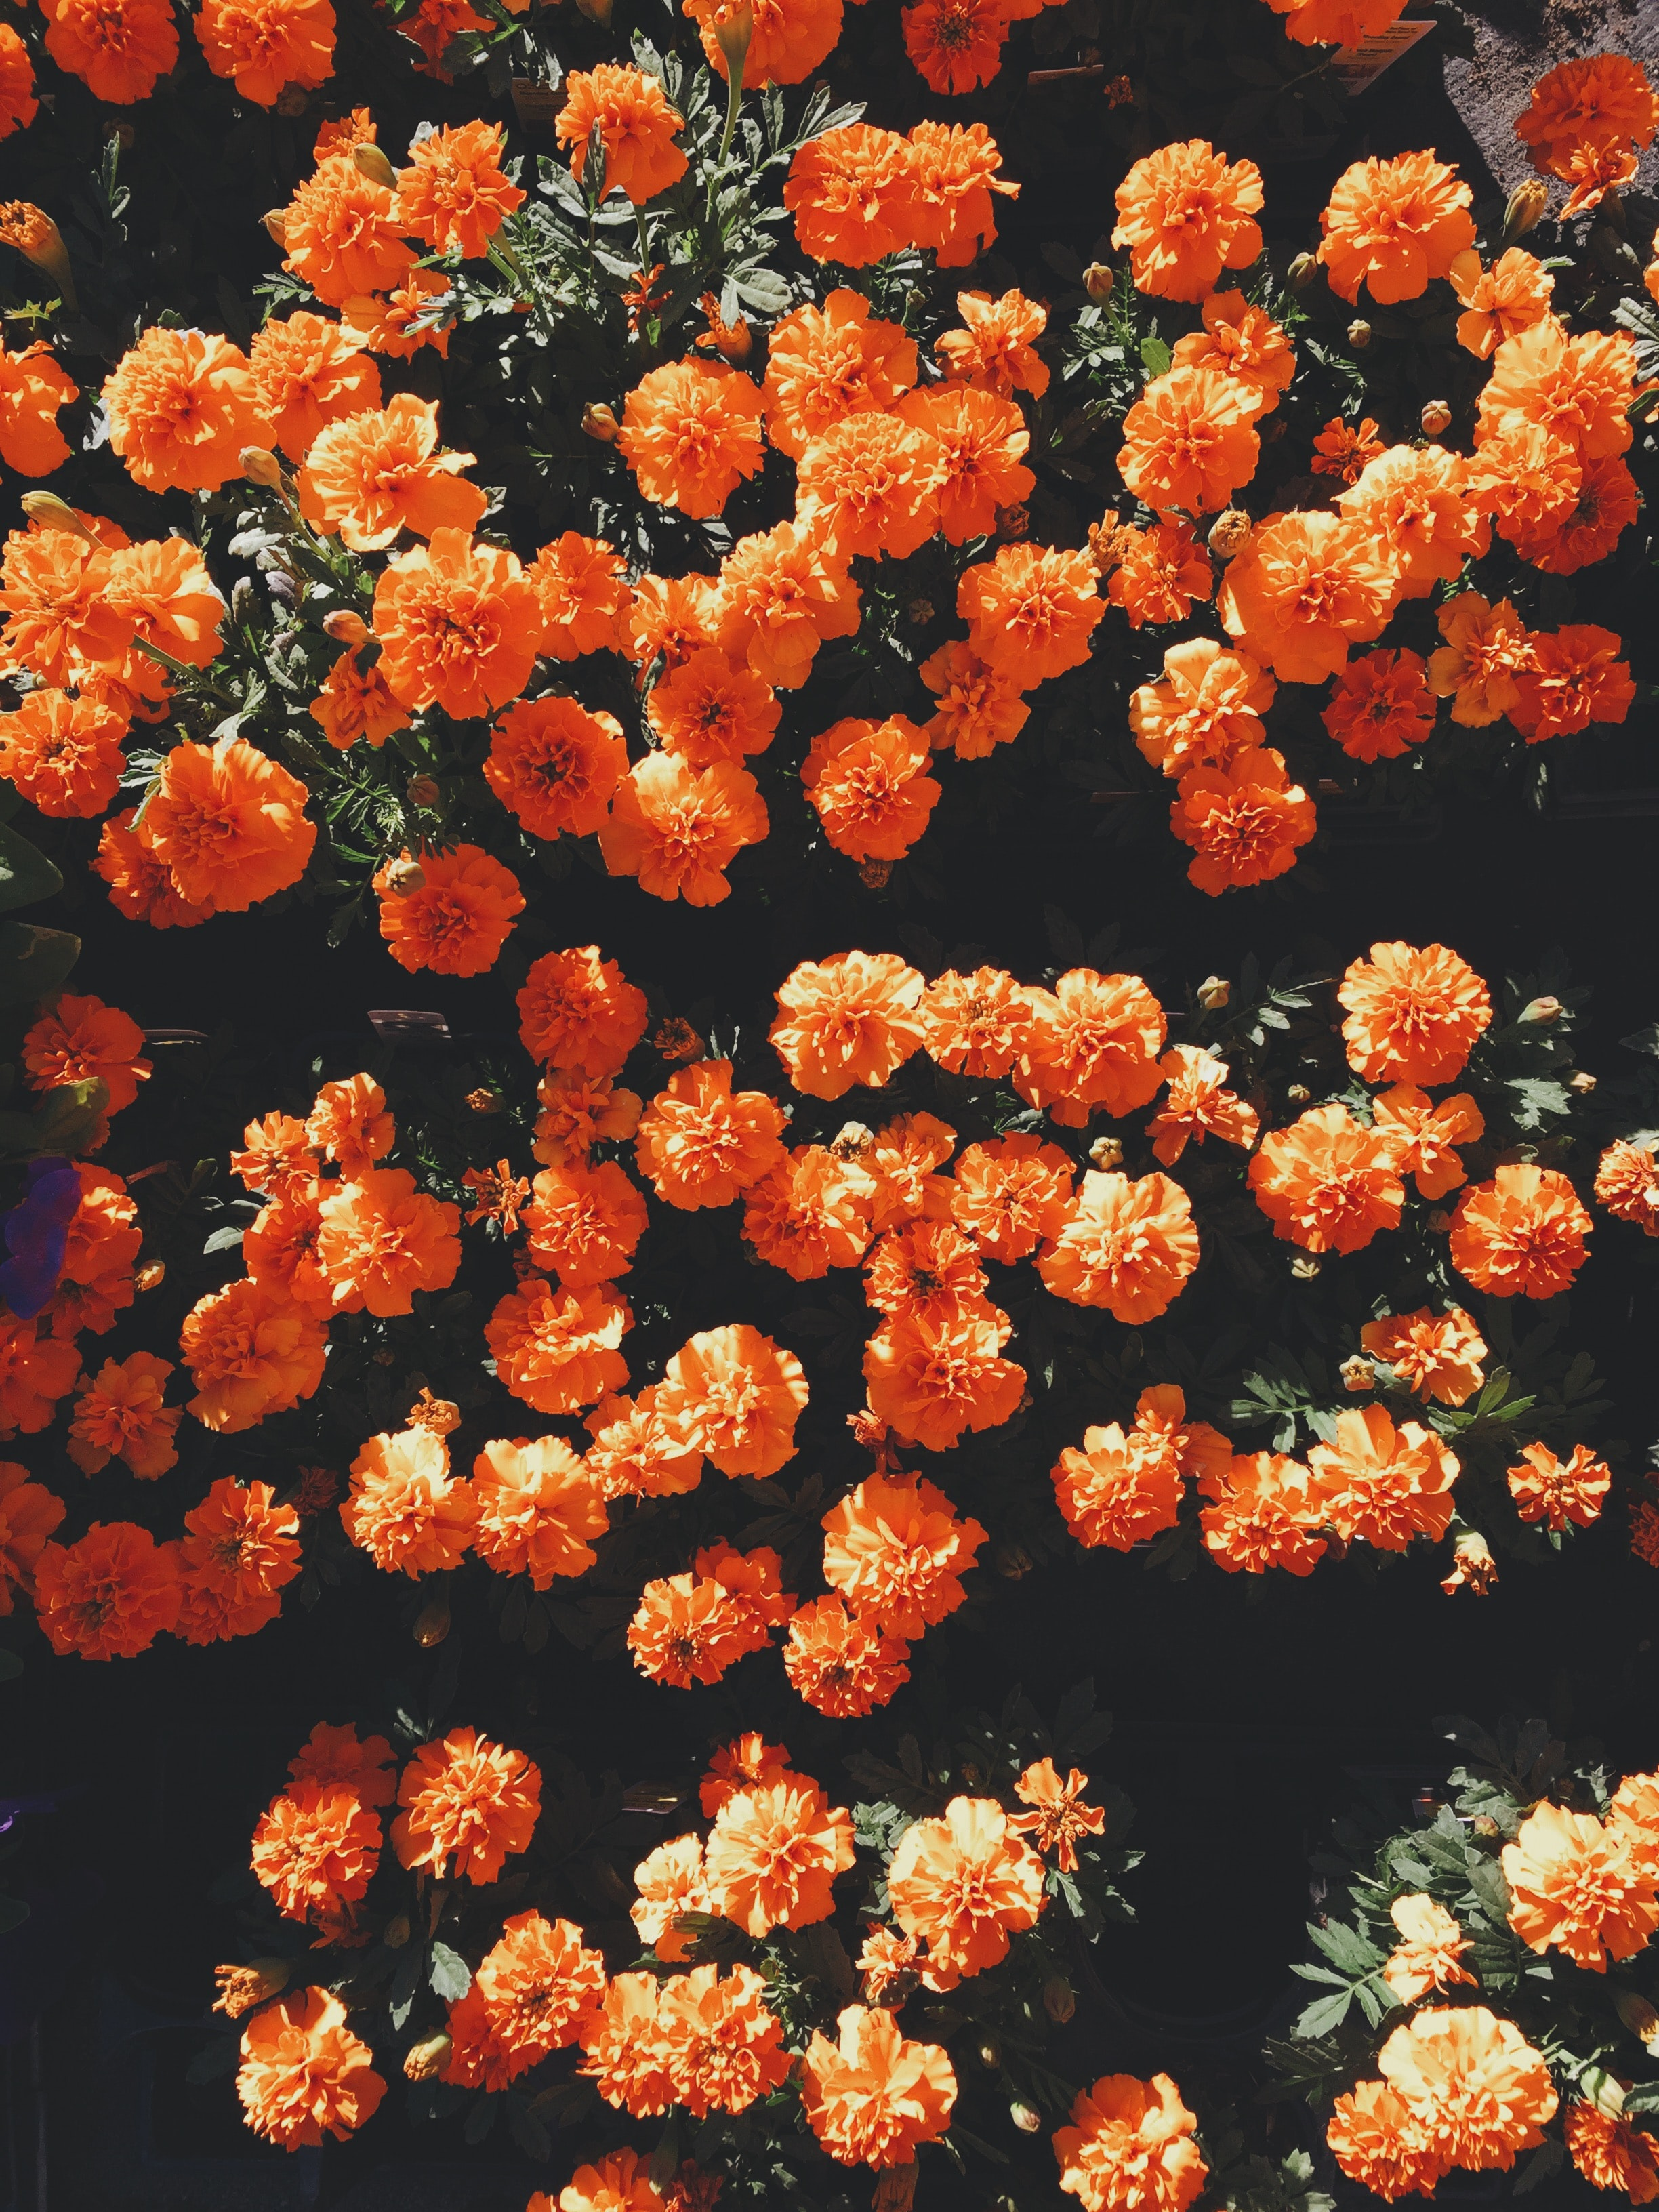 An overhead shot of a vibrant orange flower bed